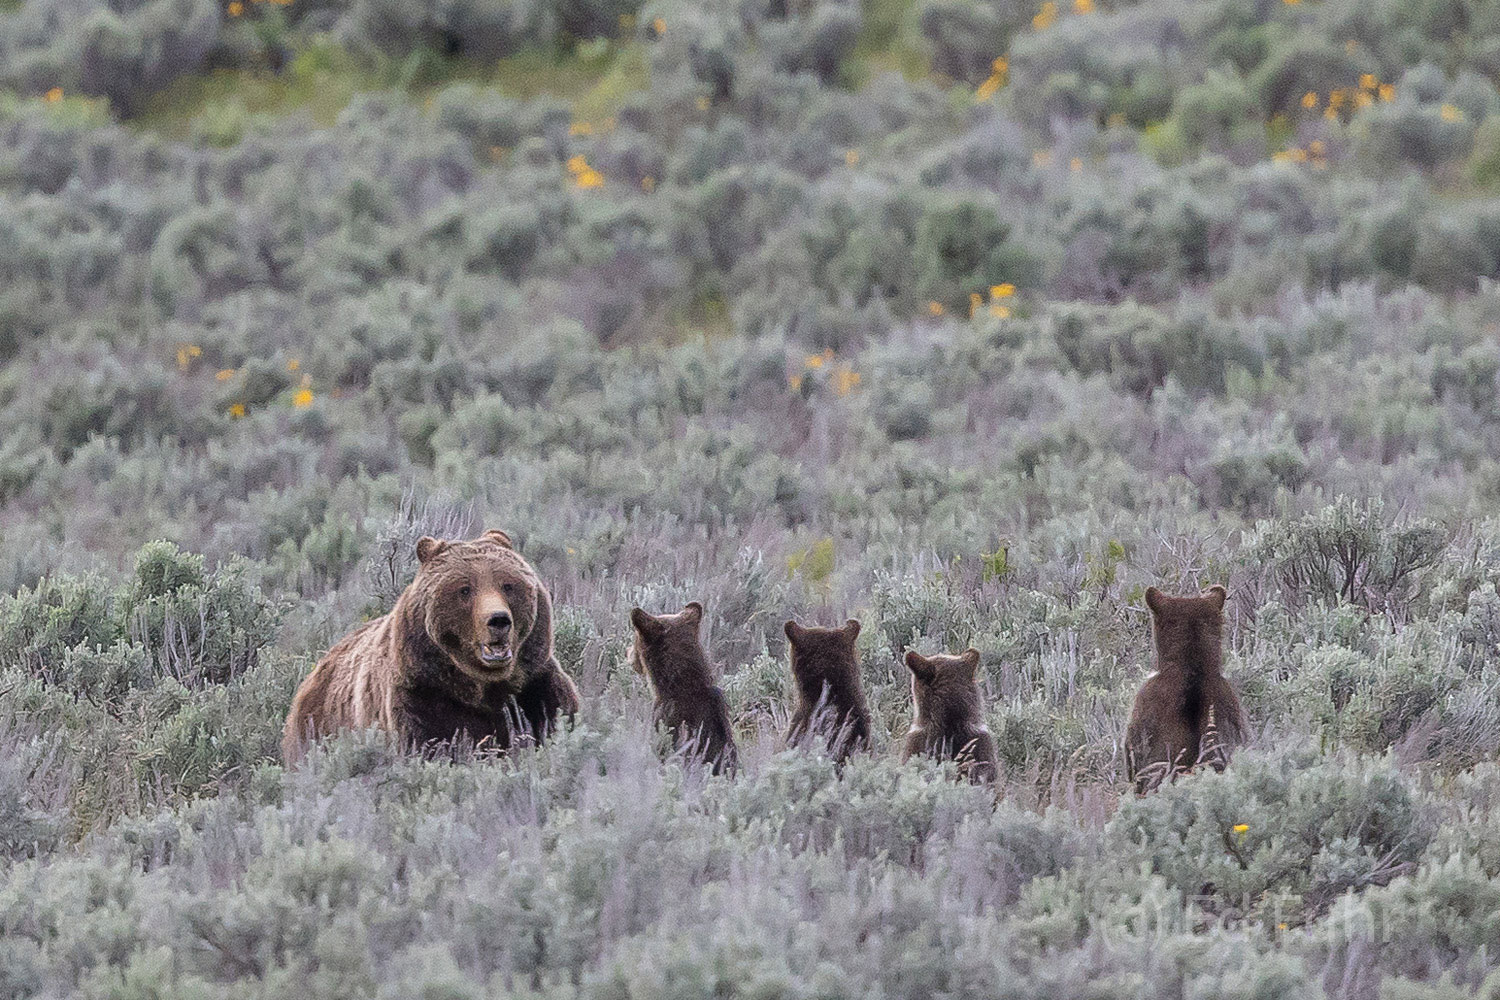 Grizzly 399 has just greeted her daughter 610 and her two subadults but knows any encounter with other grizzlies, even family...